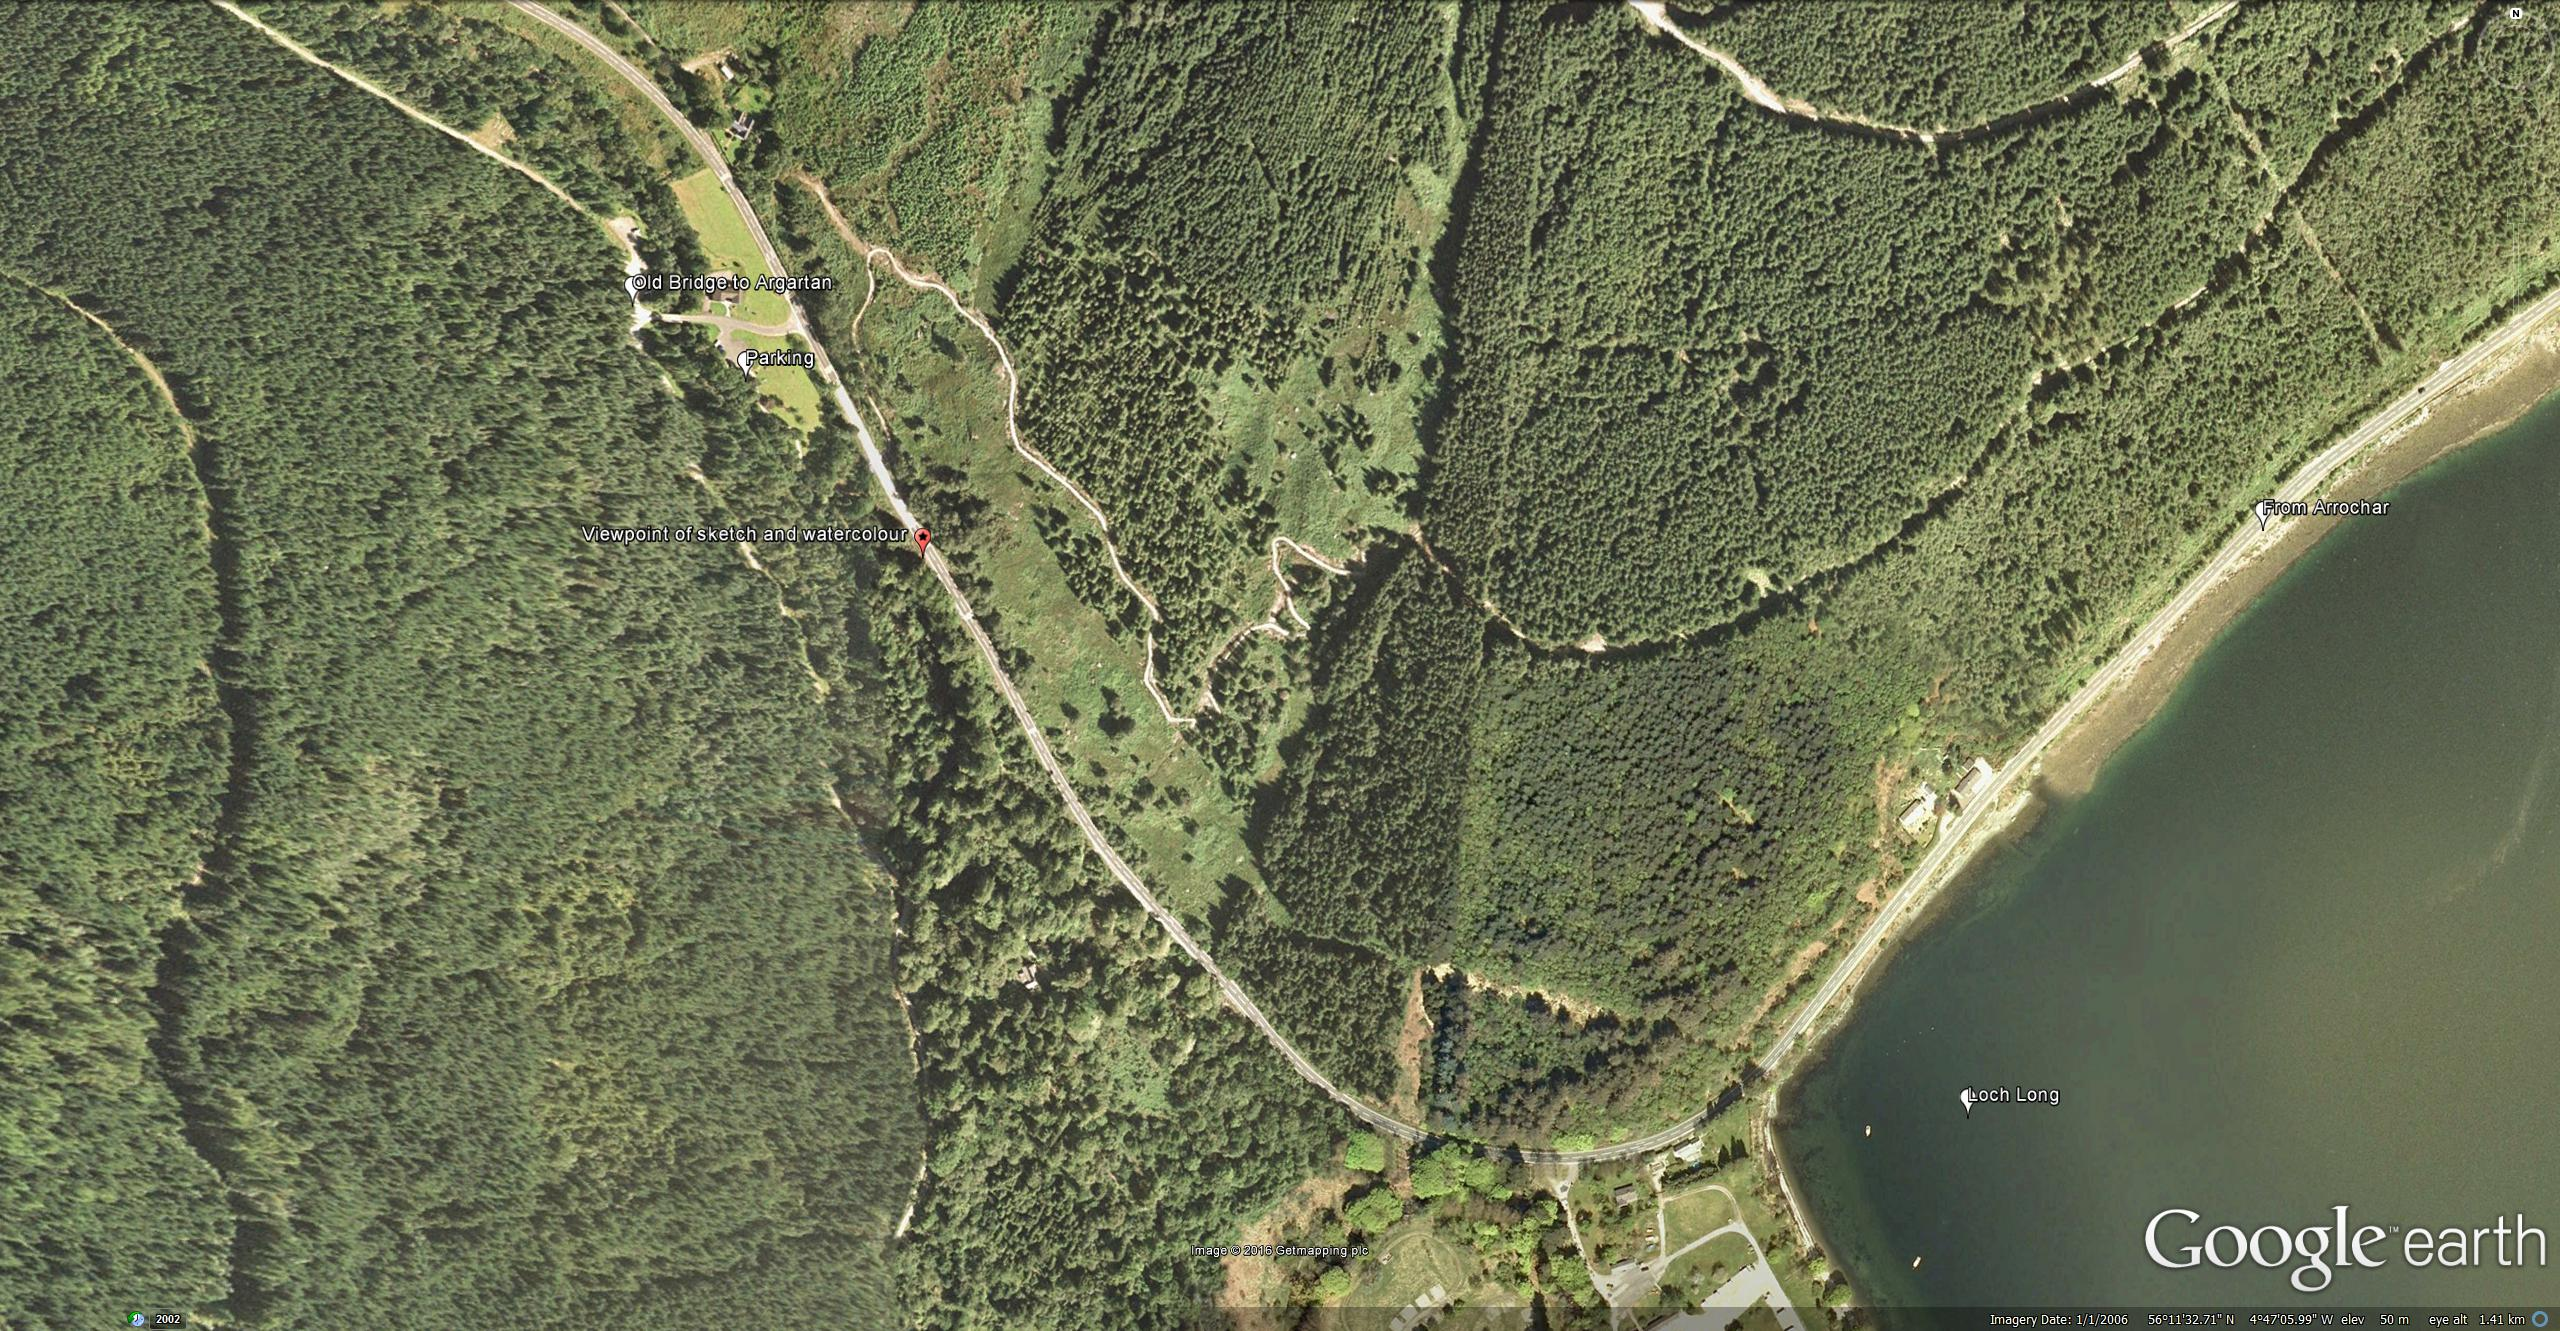 Google Earth Aerial View of Loch Long and Ardgartan. Detail of Turner's viewpoint and nearby parking.